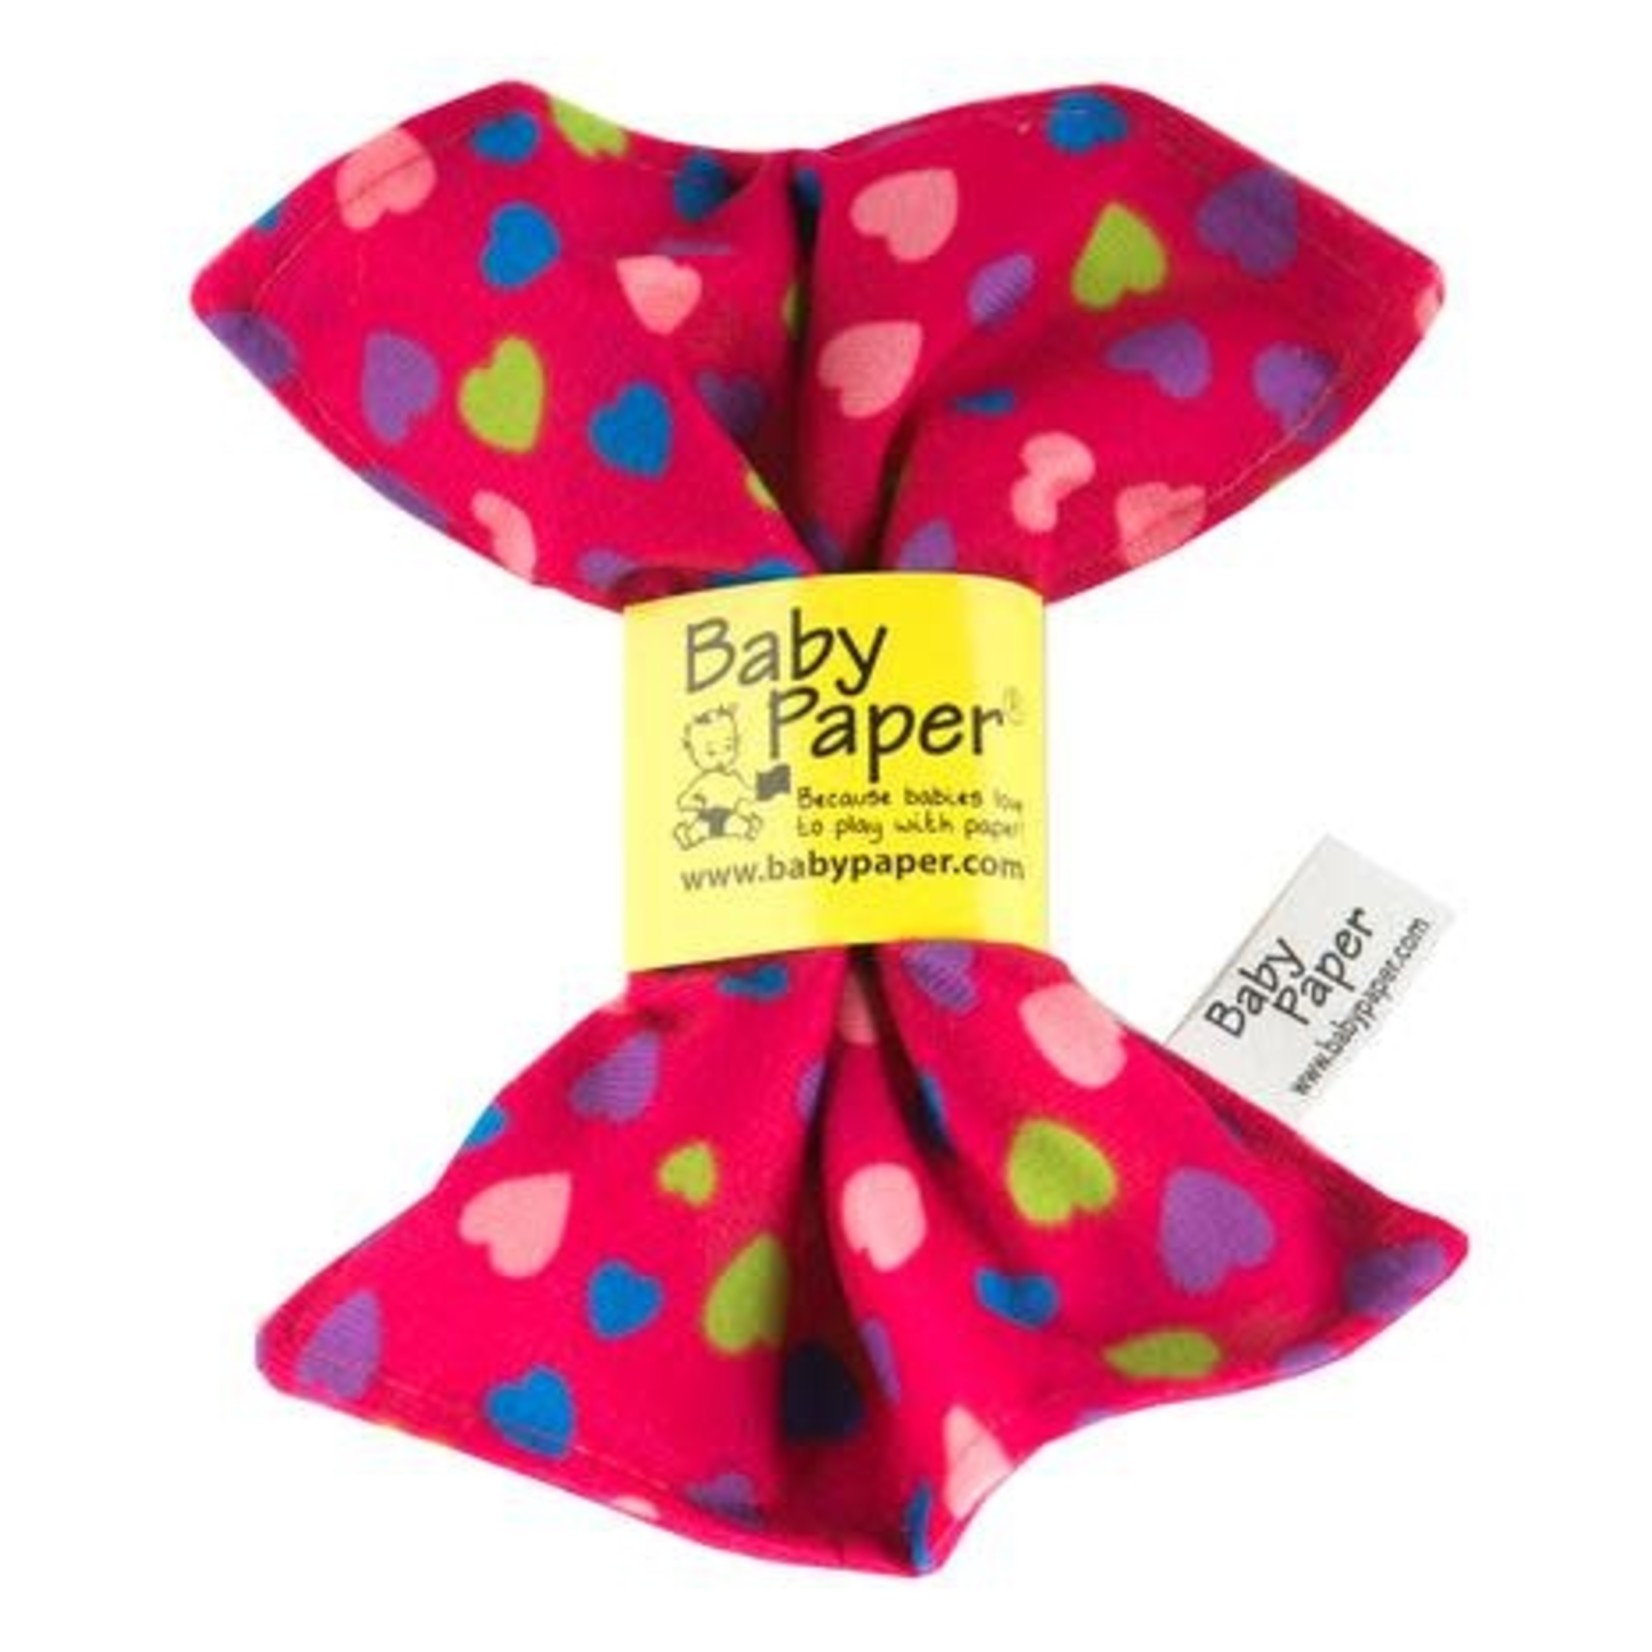 Baby Paper Baby Paper - Pink Hearts